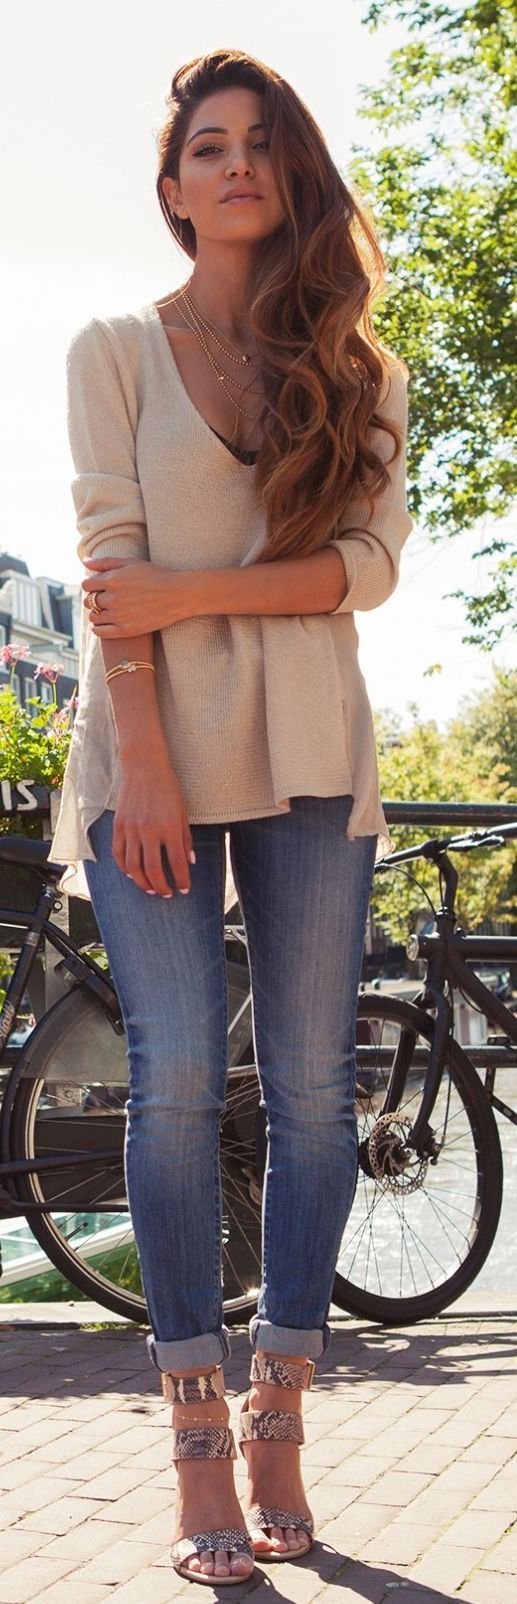 Beige Knit Semi Sheer V-neck Pullover by Negin Mirsalehi. So cute with the distressed jeans and gold jewelry